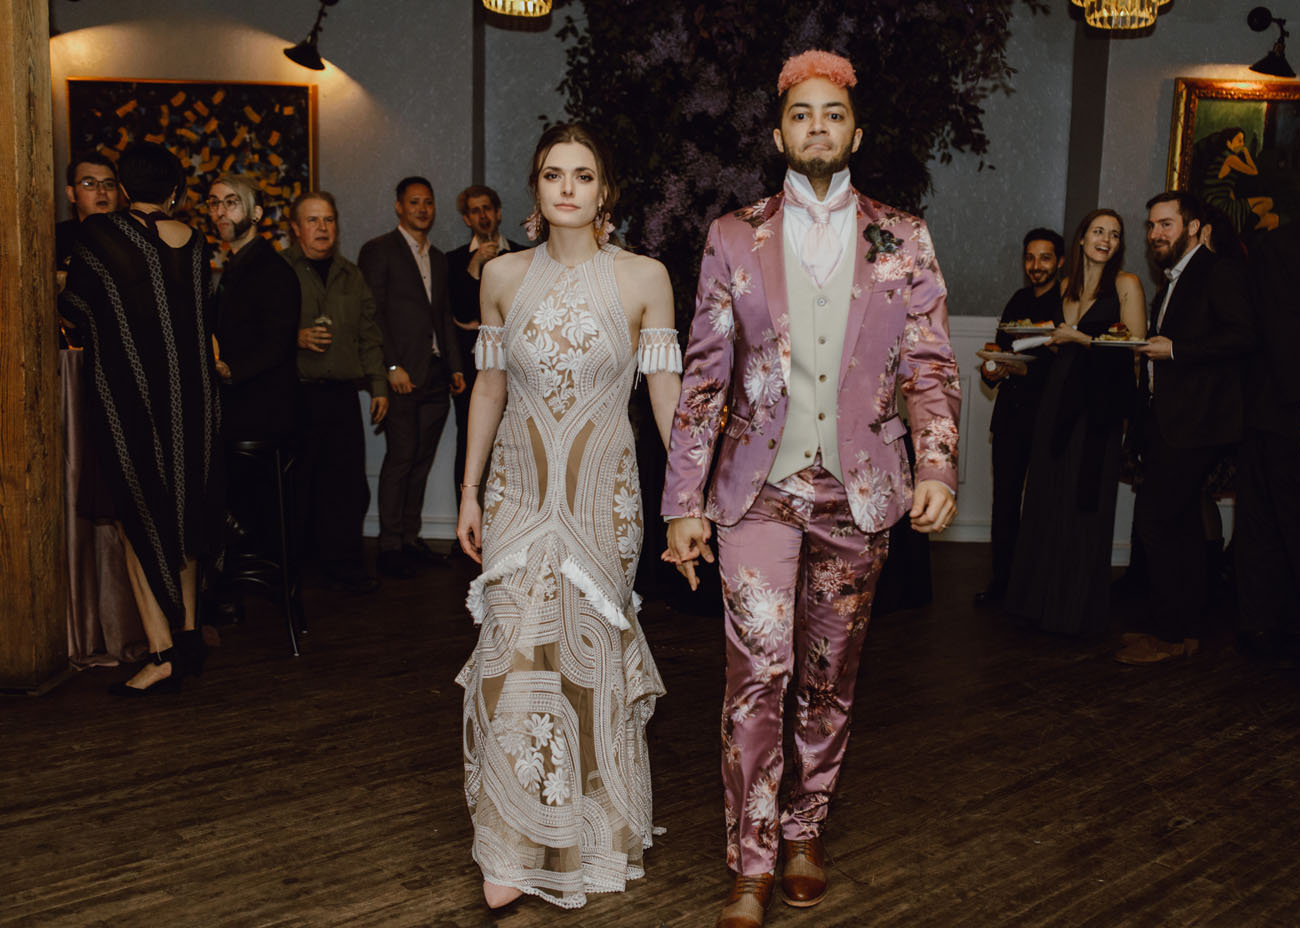 What a fashionable couple and what an unusual wedding